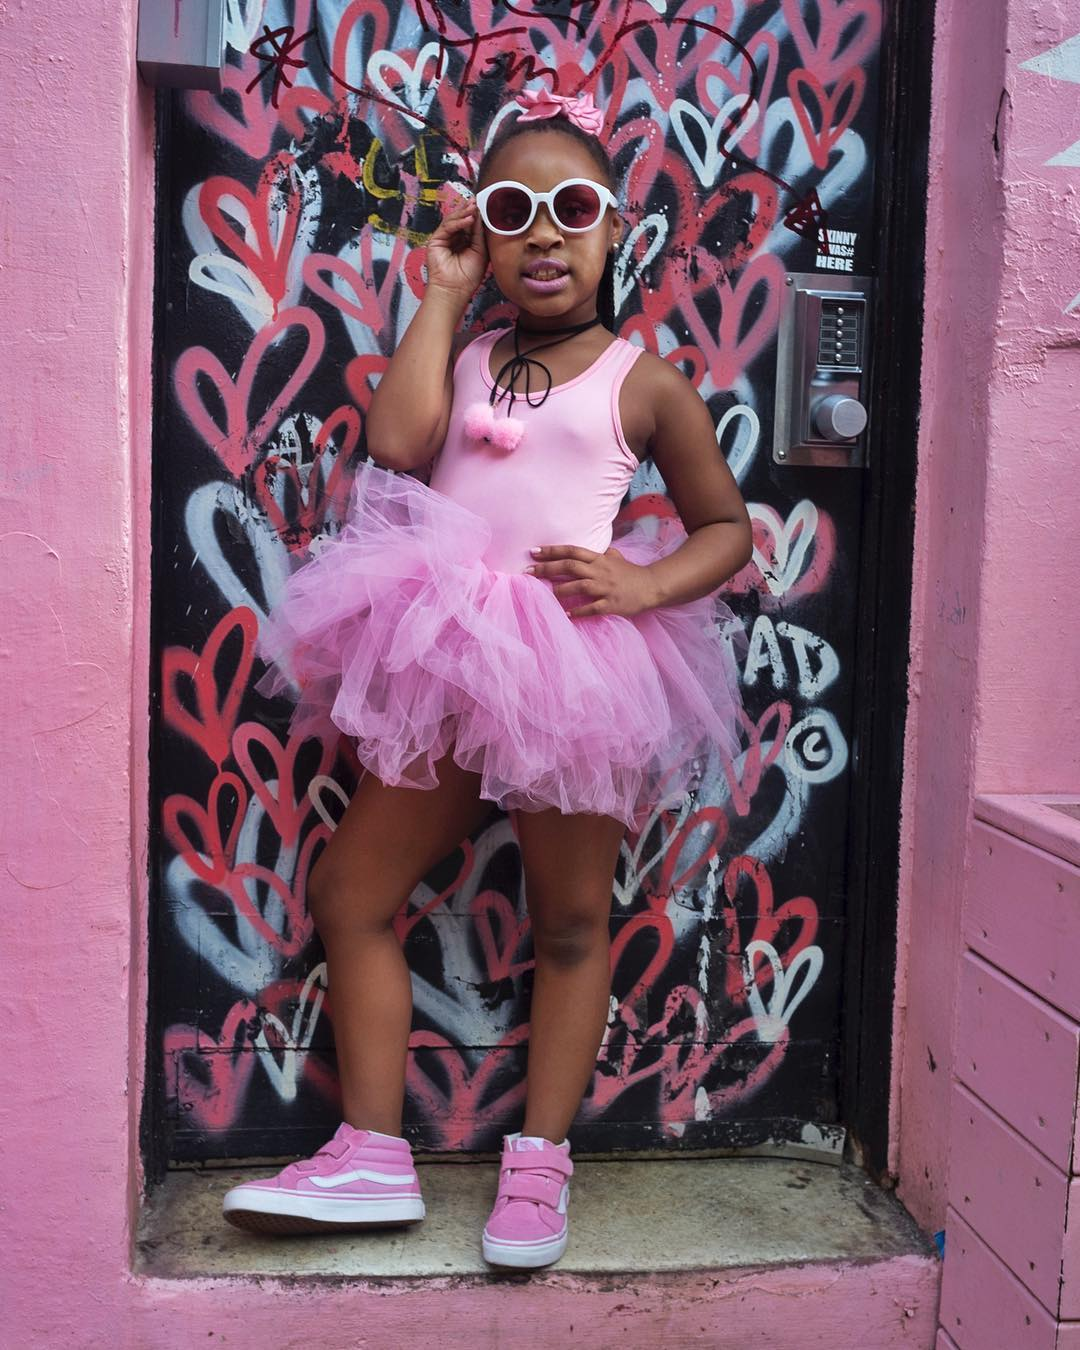 I ran into this little girl posed exactly like this on this heart wall. Talk about luck!